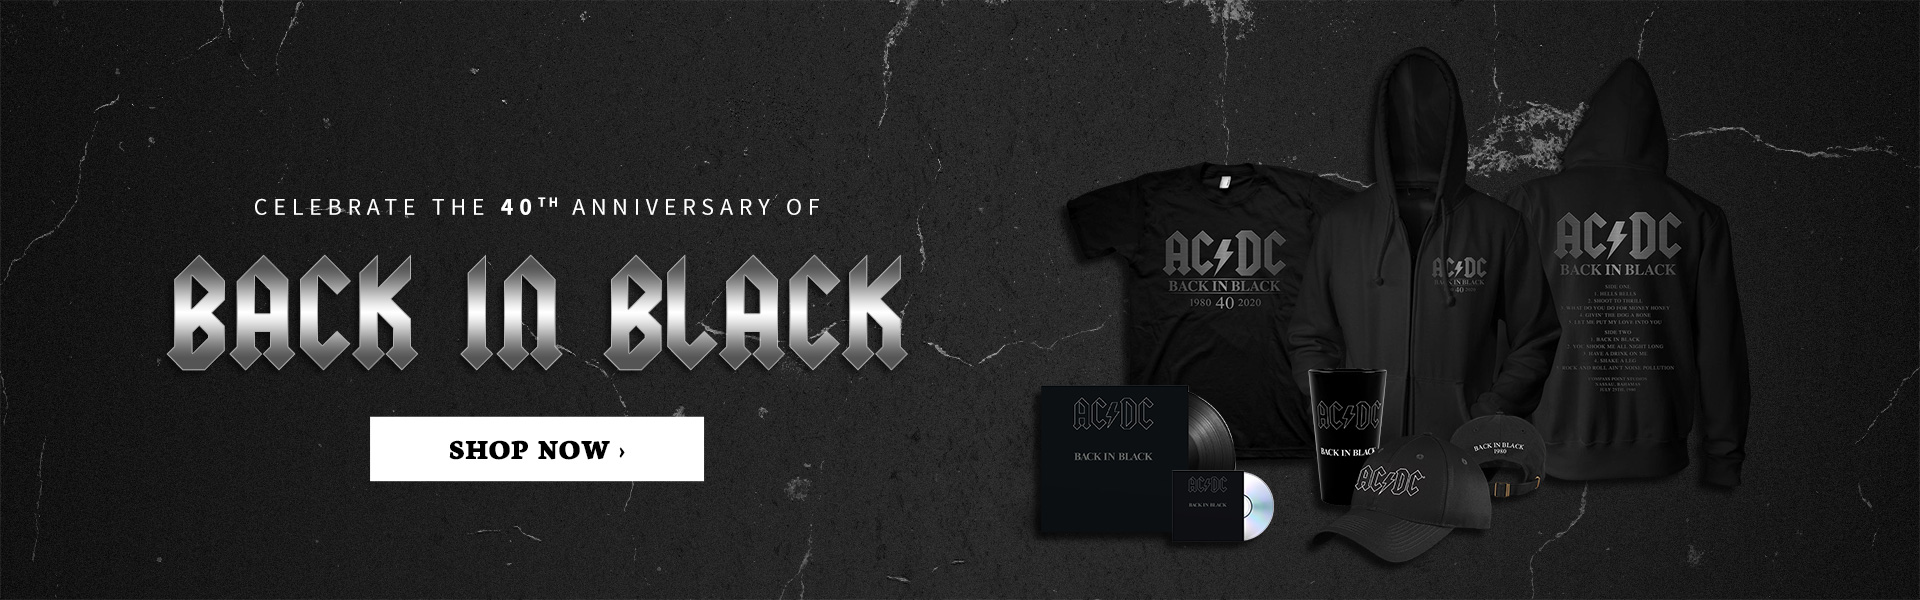 Back in Black 40th Anniversary